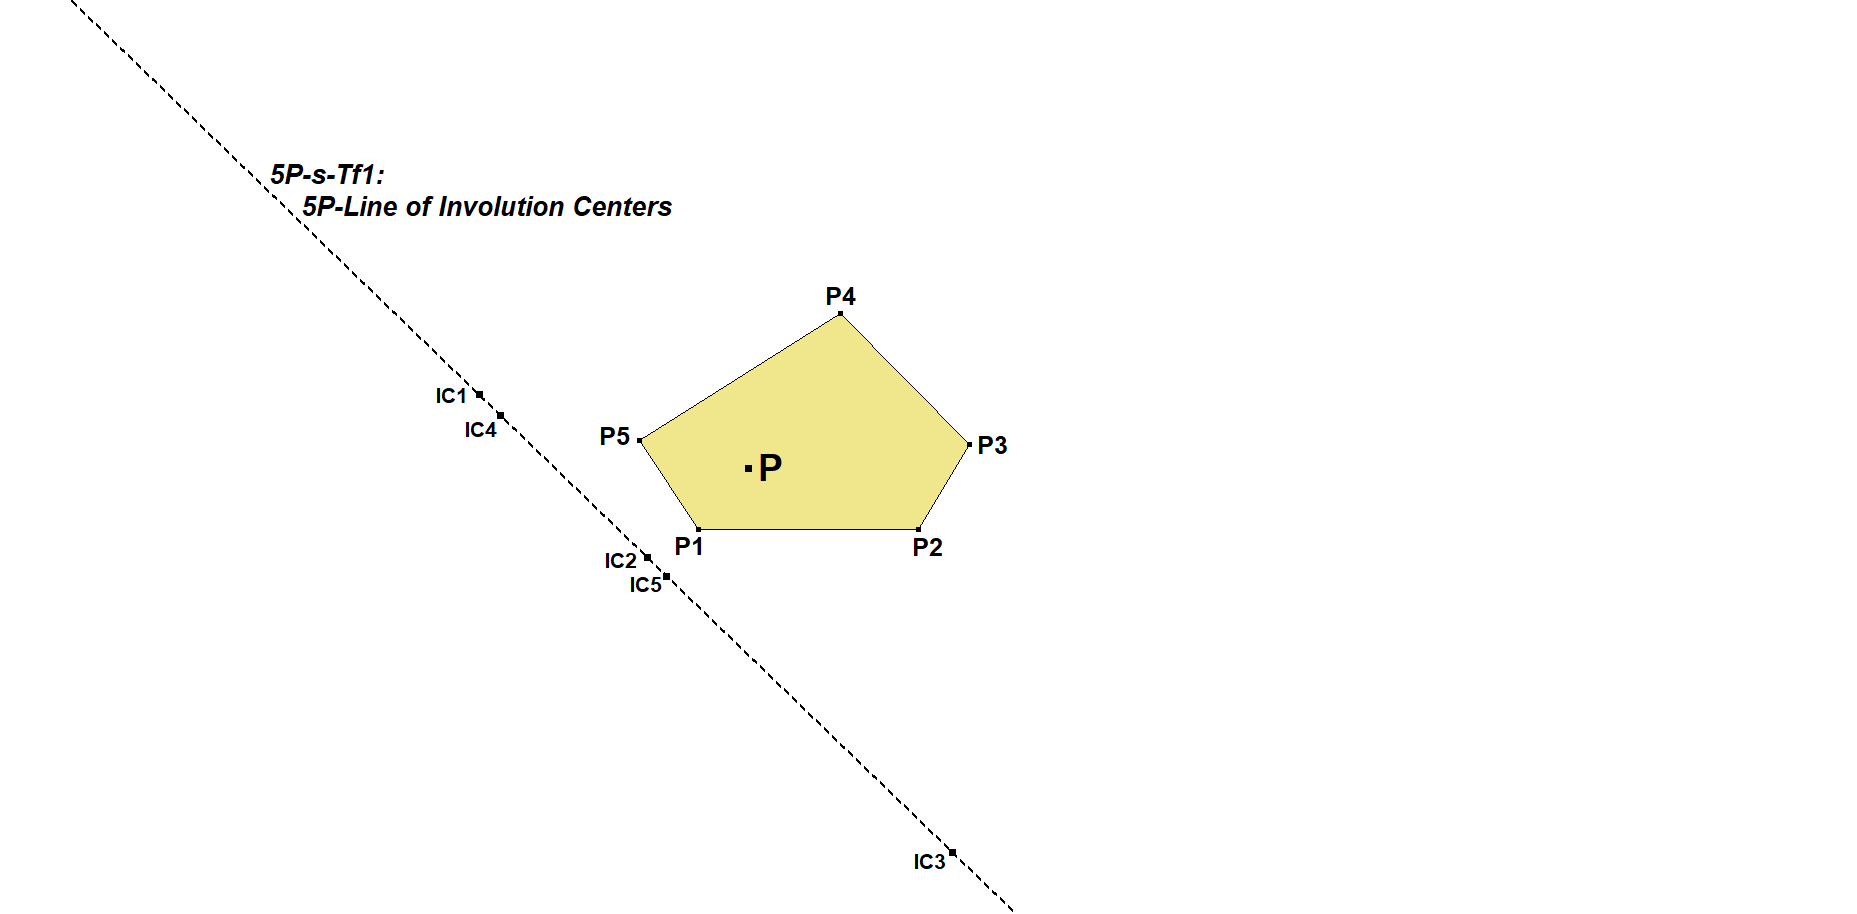 5P s Tf1 Line of Involution Centers 01